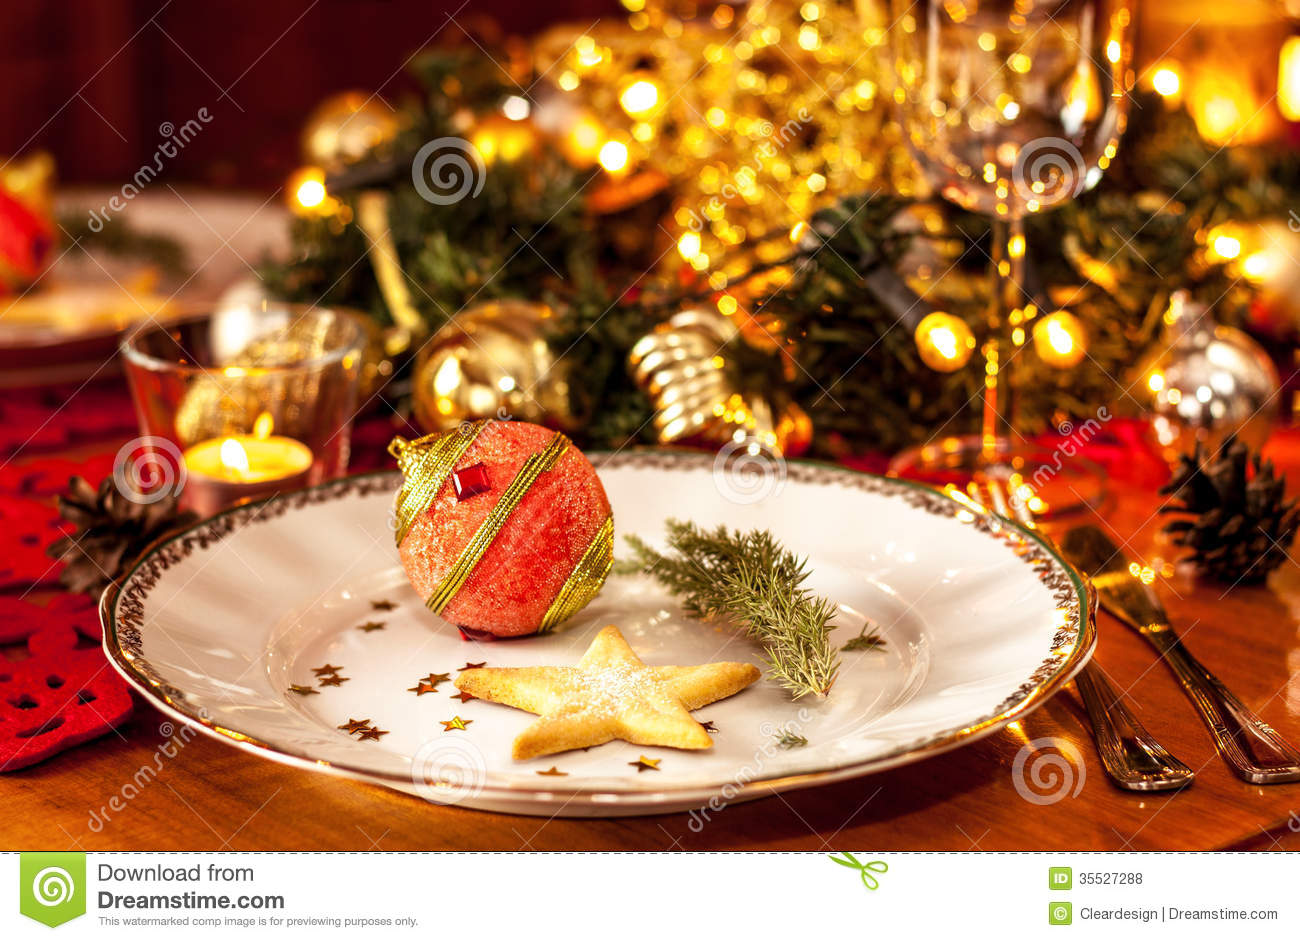 Christmas eve dinner party table setting with decorations for Christmas dinner table setting ideas